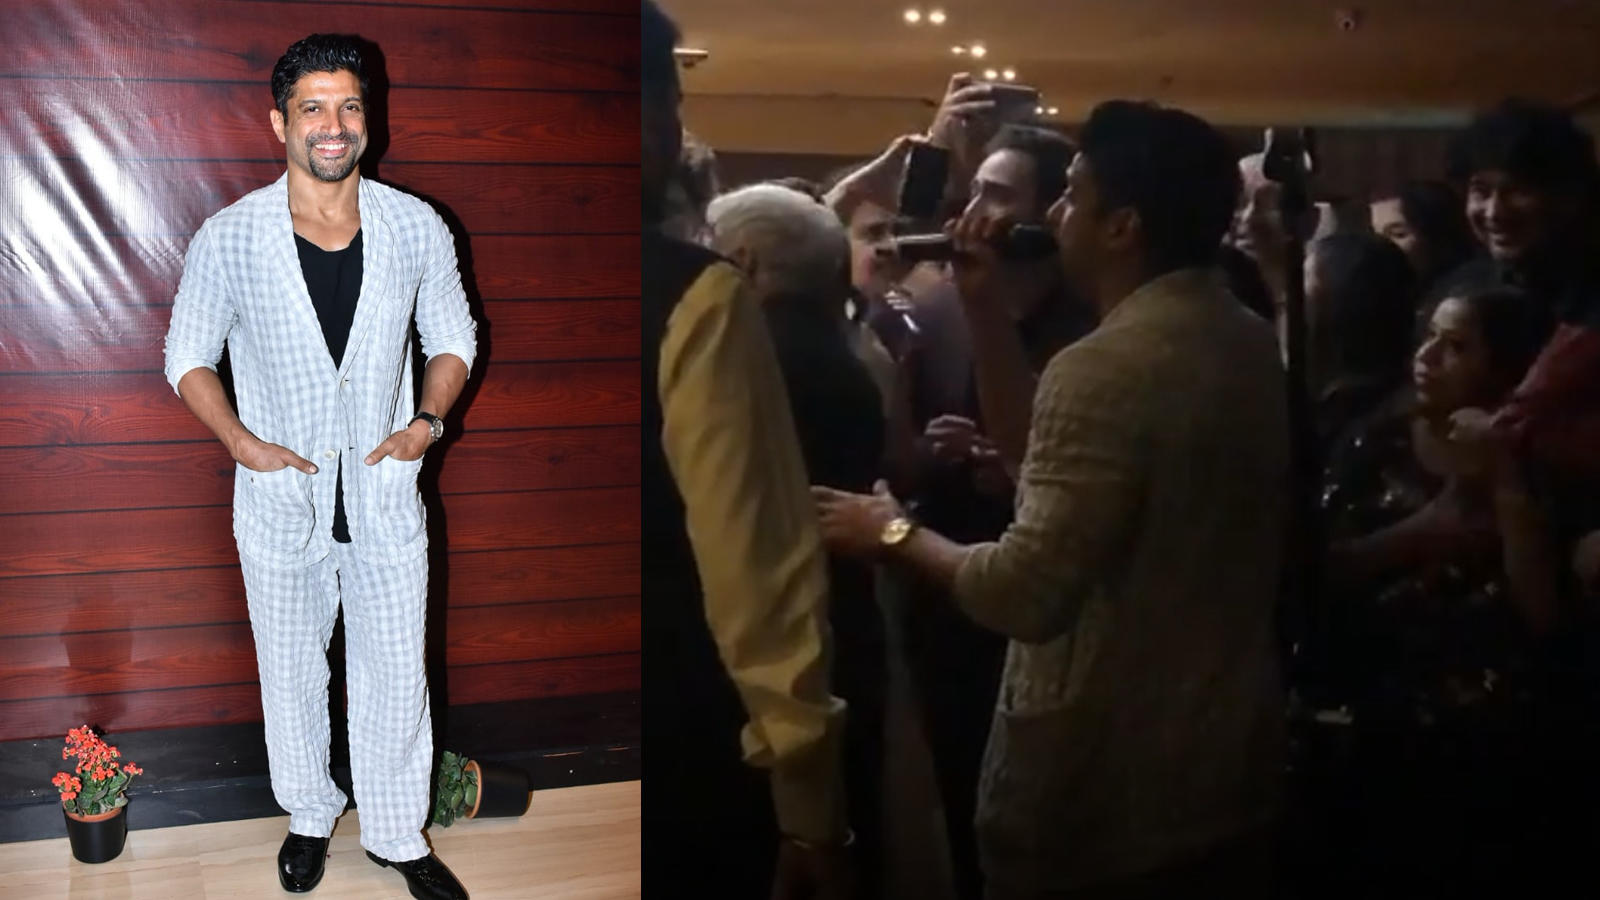 farhan-akhtar-sings-senorita-from-zindagi-na-milegi-dobara-at-dad-javed-akhtars-birthday-bash-video-goes-viral